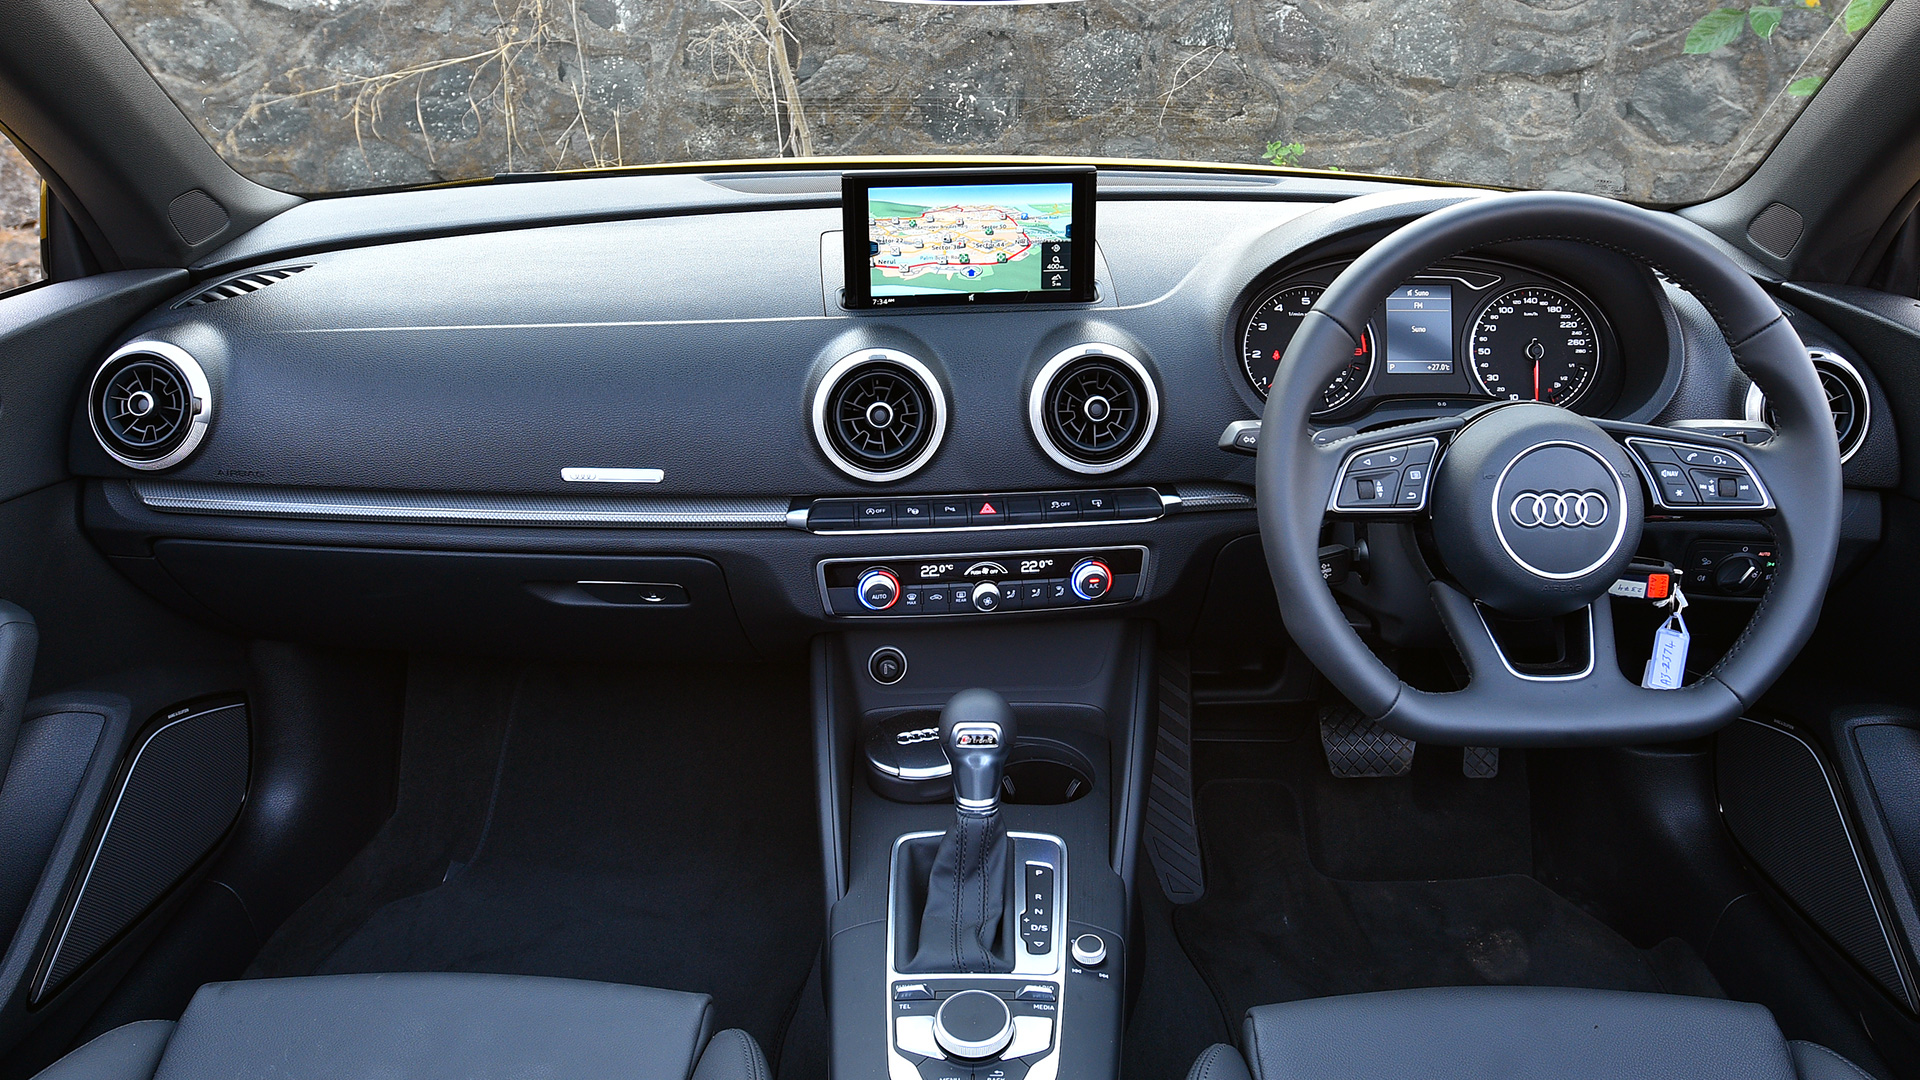 Audi A3 Cabriolet 2017 35 TFSI Interior Car Photos - Overdrive